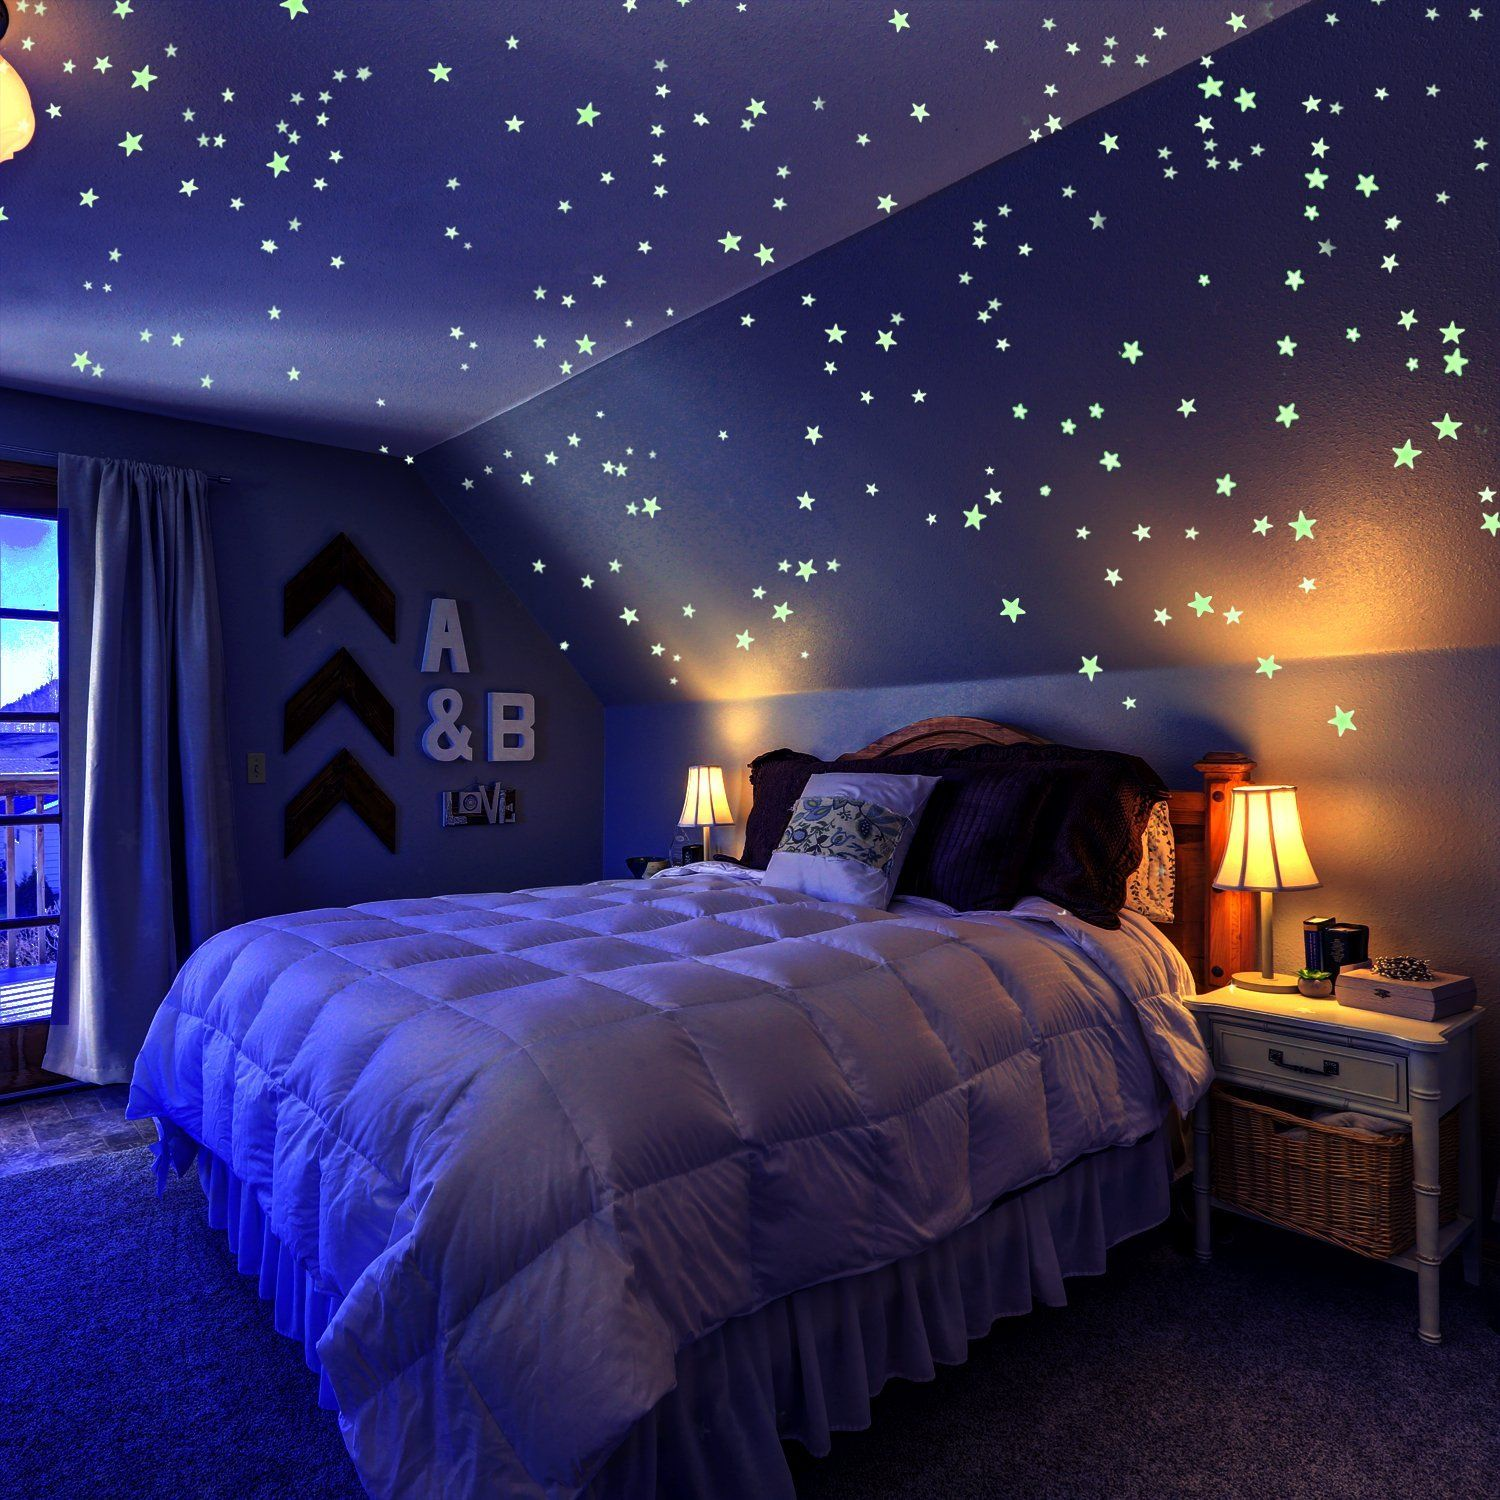 Glow in the Dark Stars pack of 909, Set with Adhesive